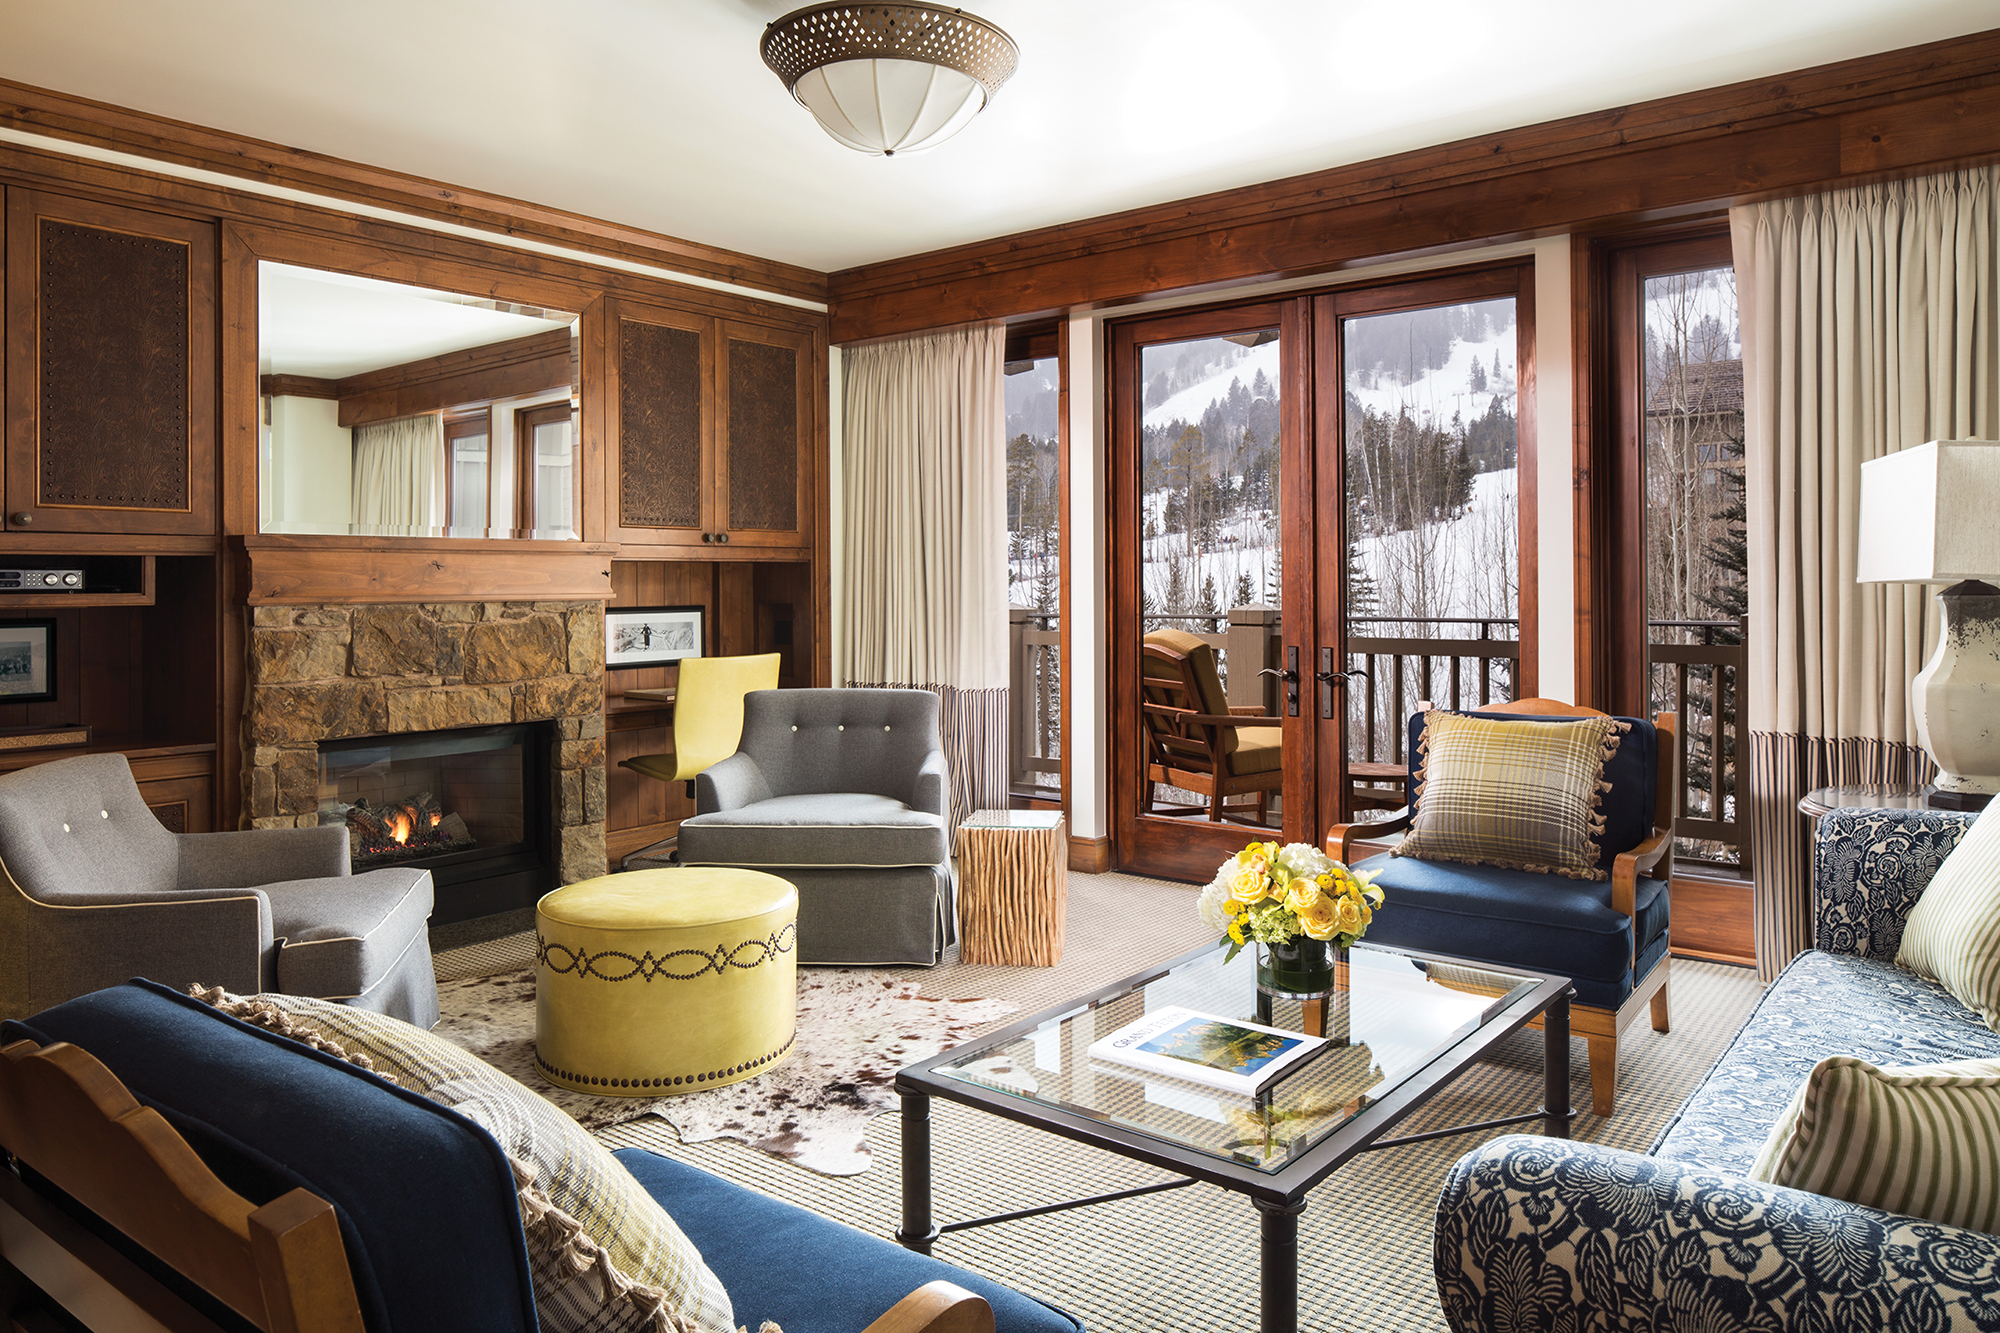 Propriedade Fraccionada para Venda às Four Seasons Fractional Ownership 7680 Granite Loop Road #554 Teton Village, Wyoming 83025 Estados Unidos